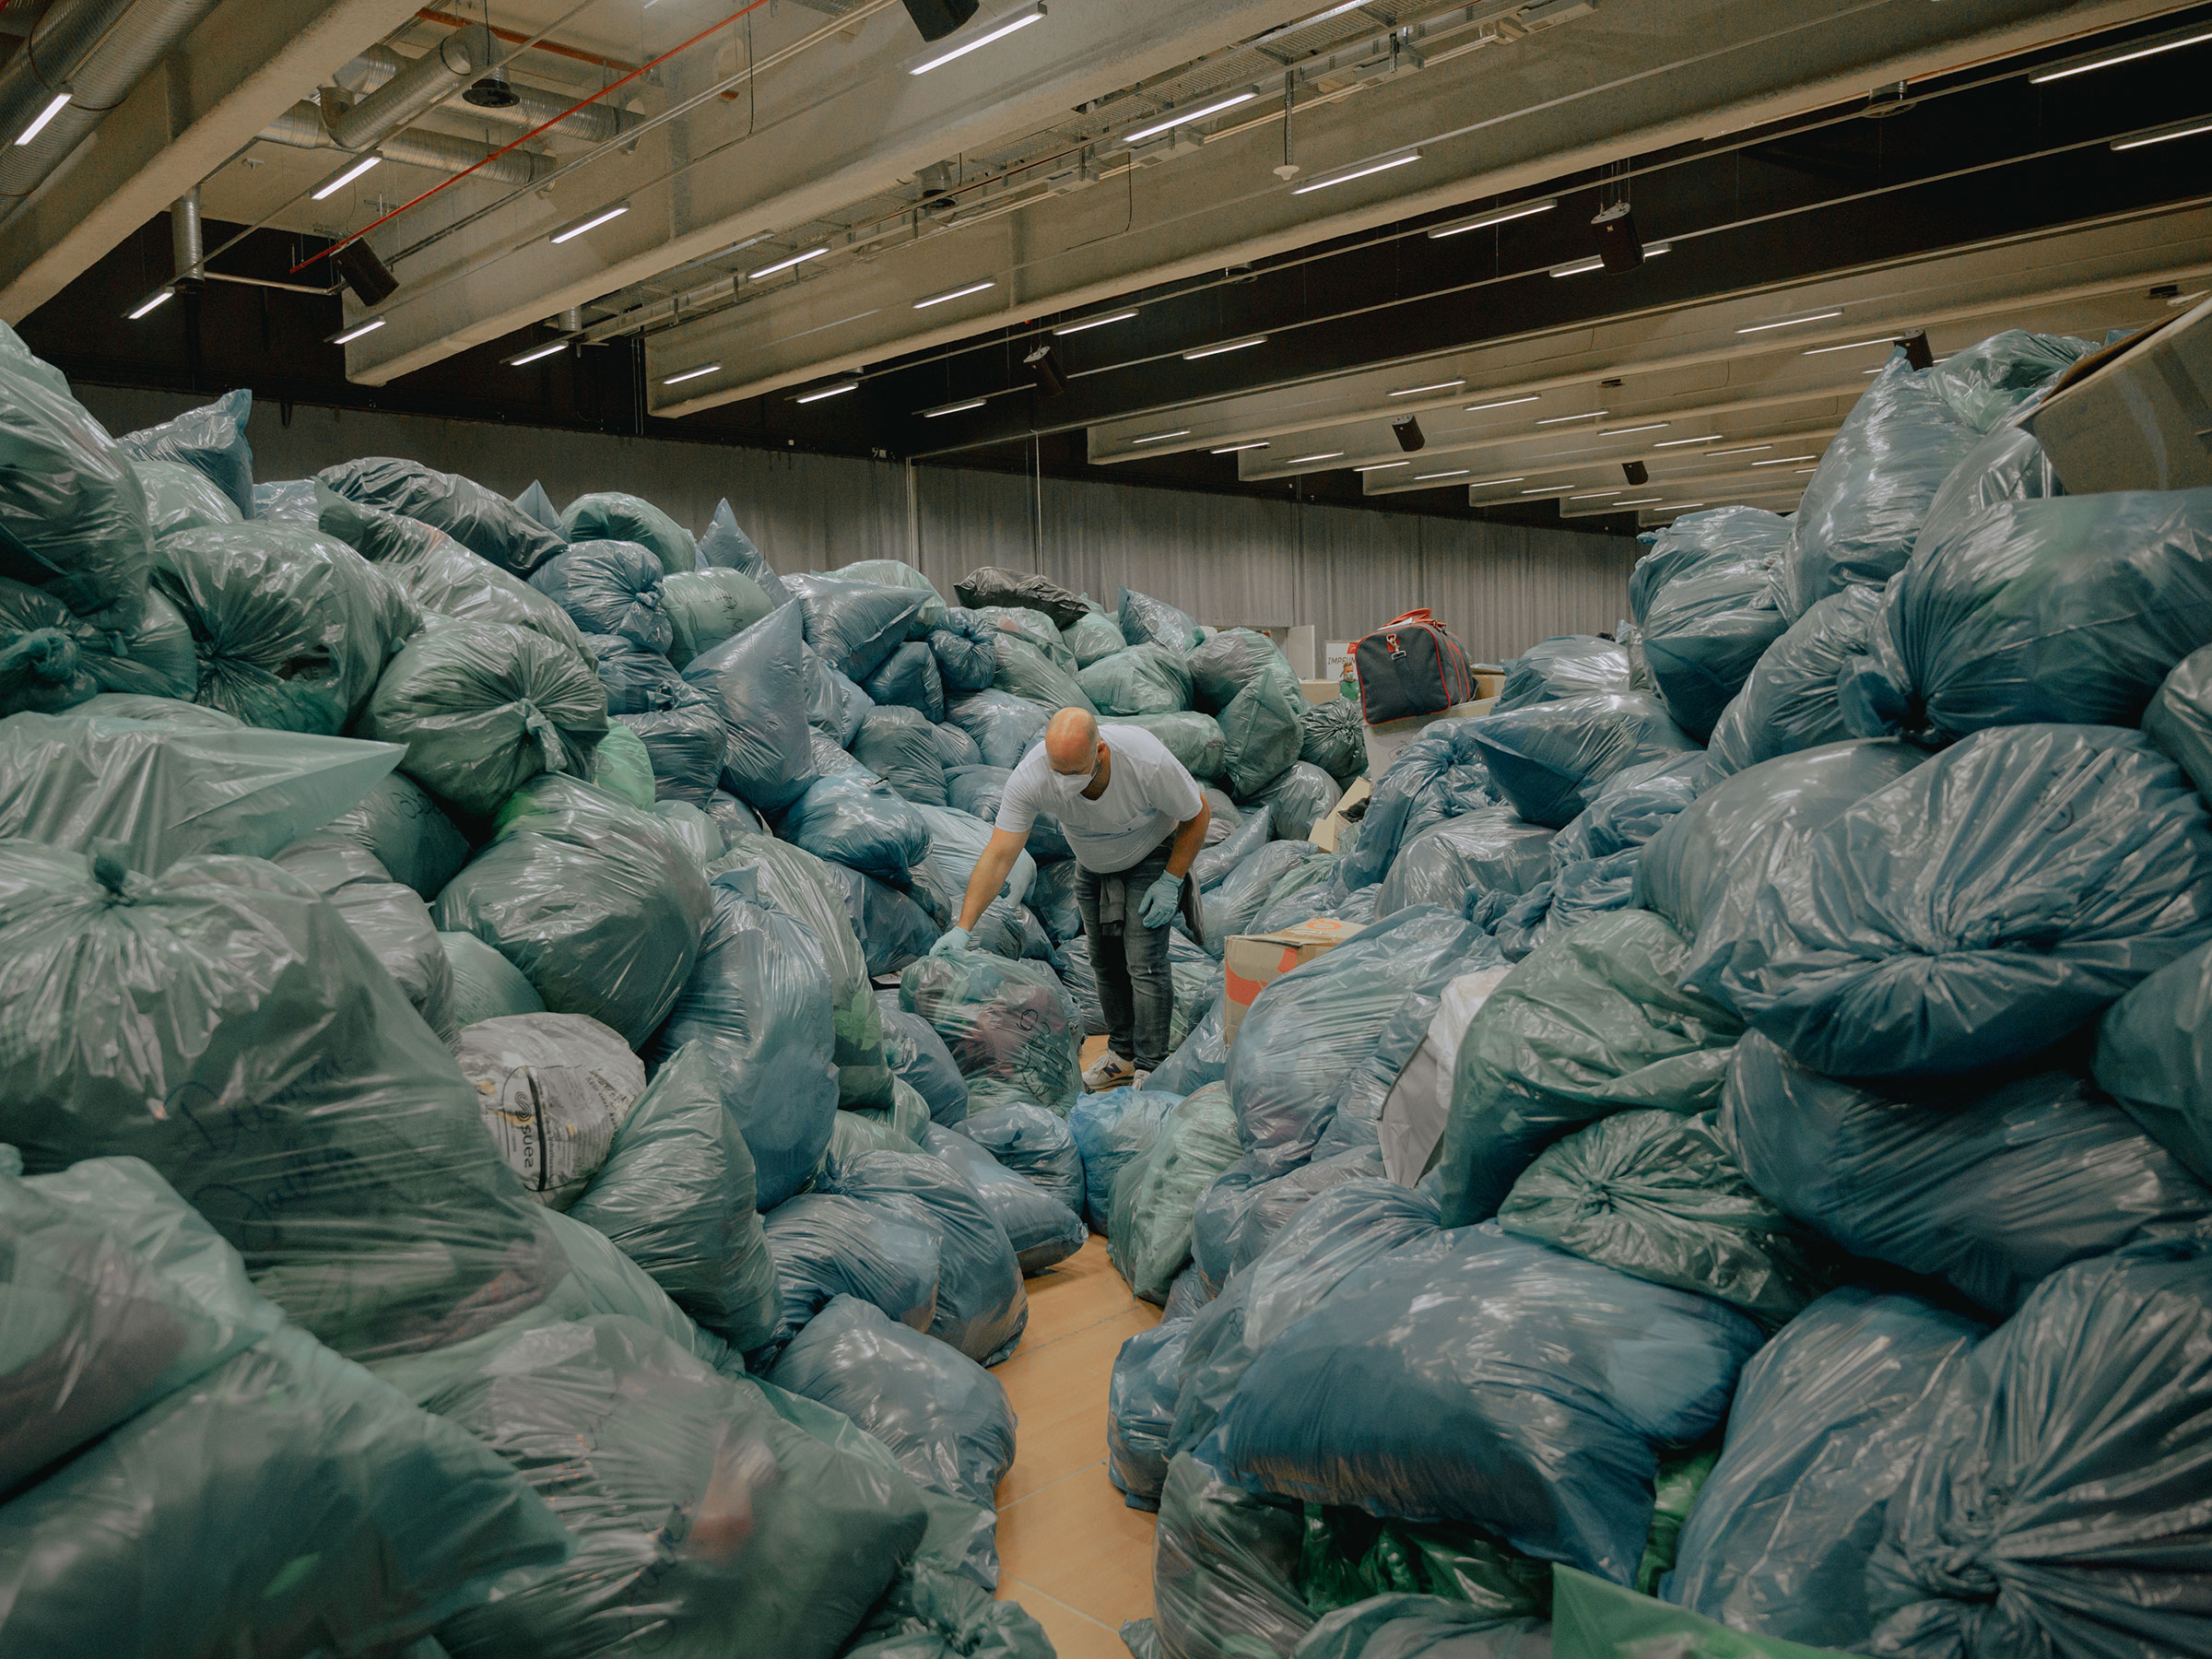 Hundreds of people have volunteered to sort through donations for flood victims at a collection point in Nürburgring, Germany, on July 16.